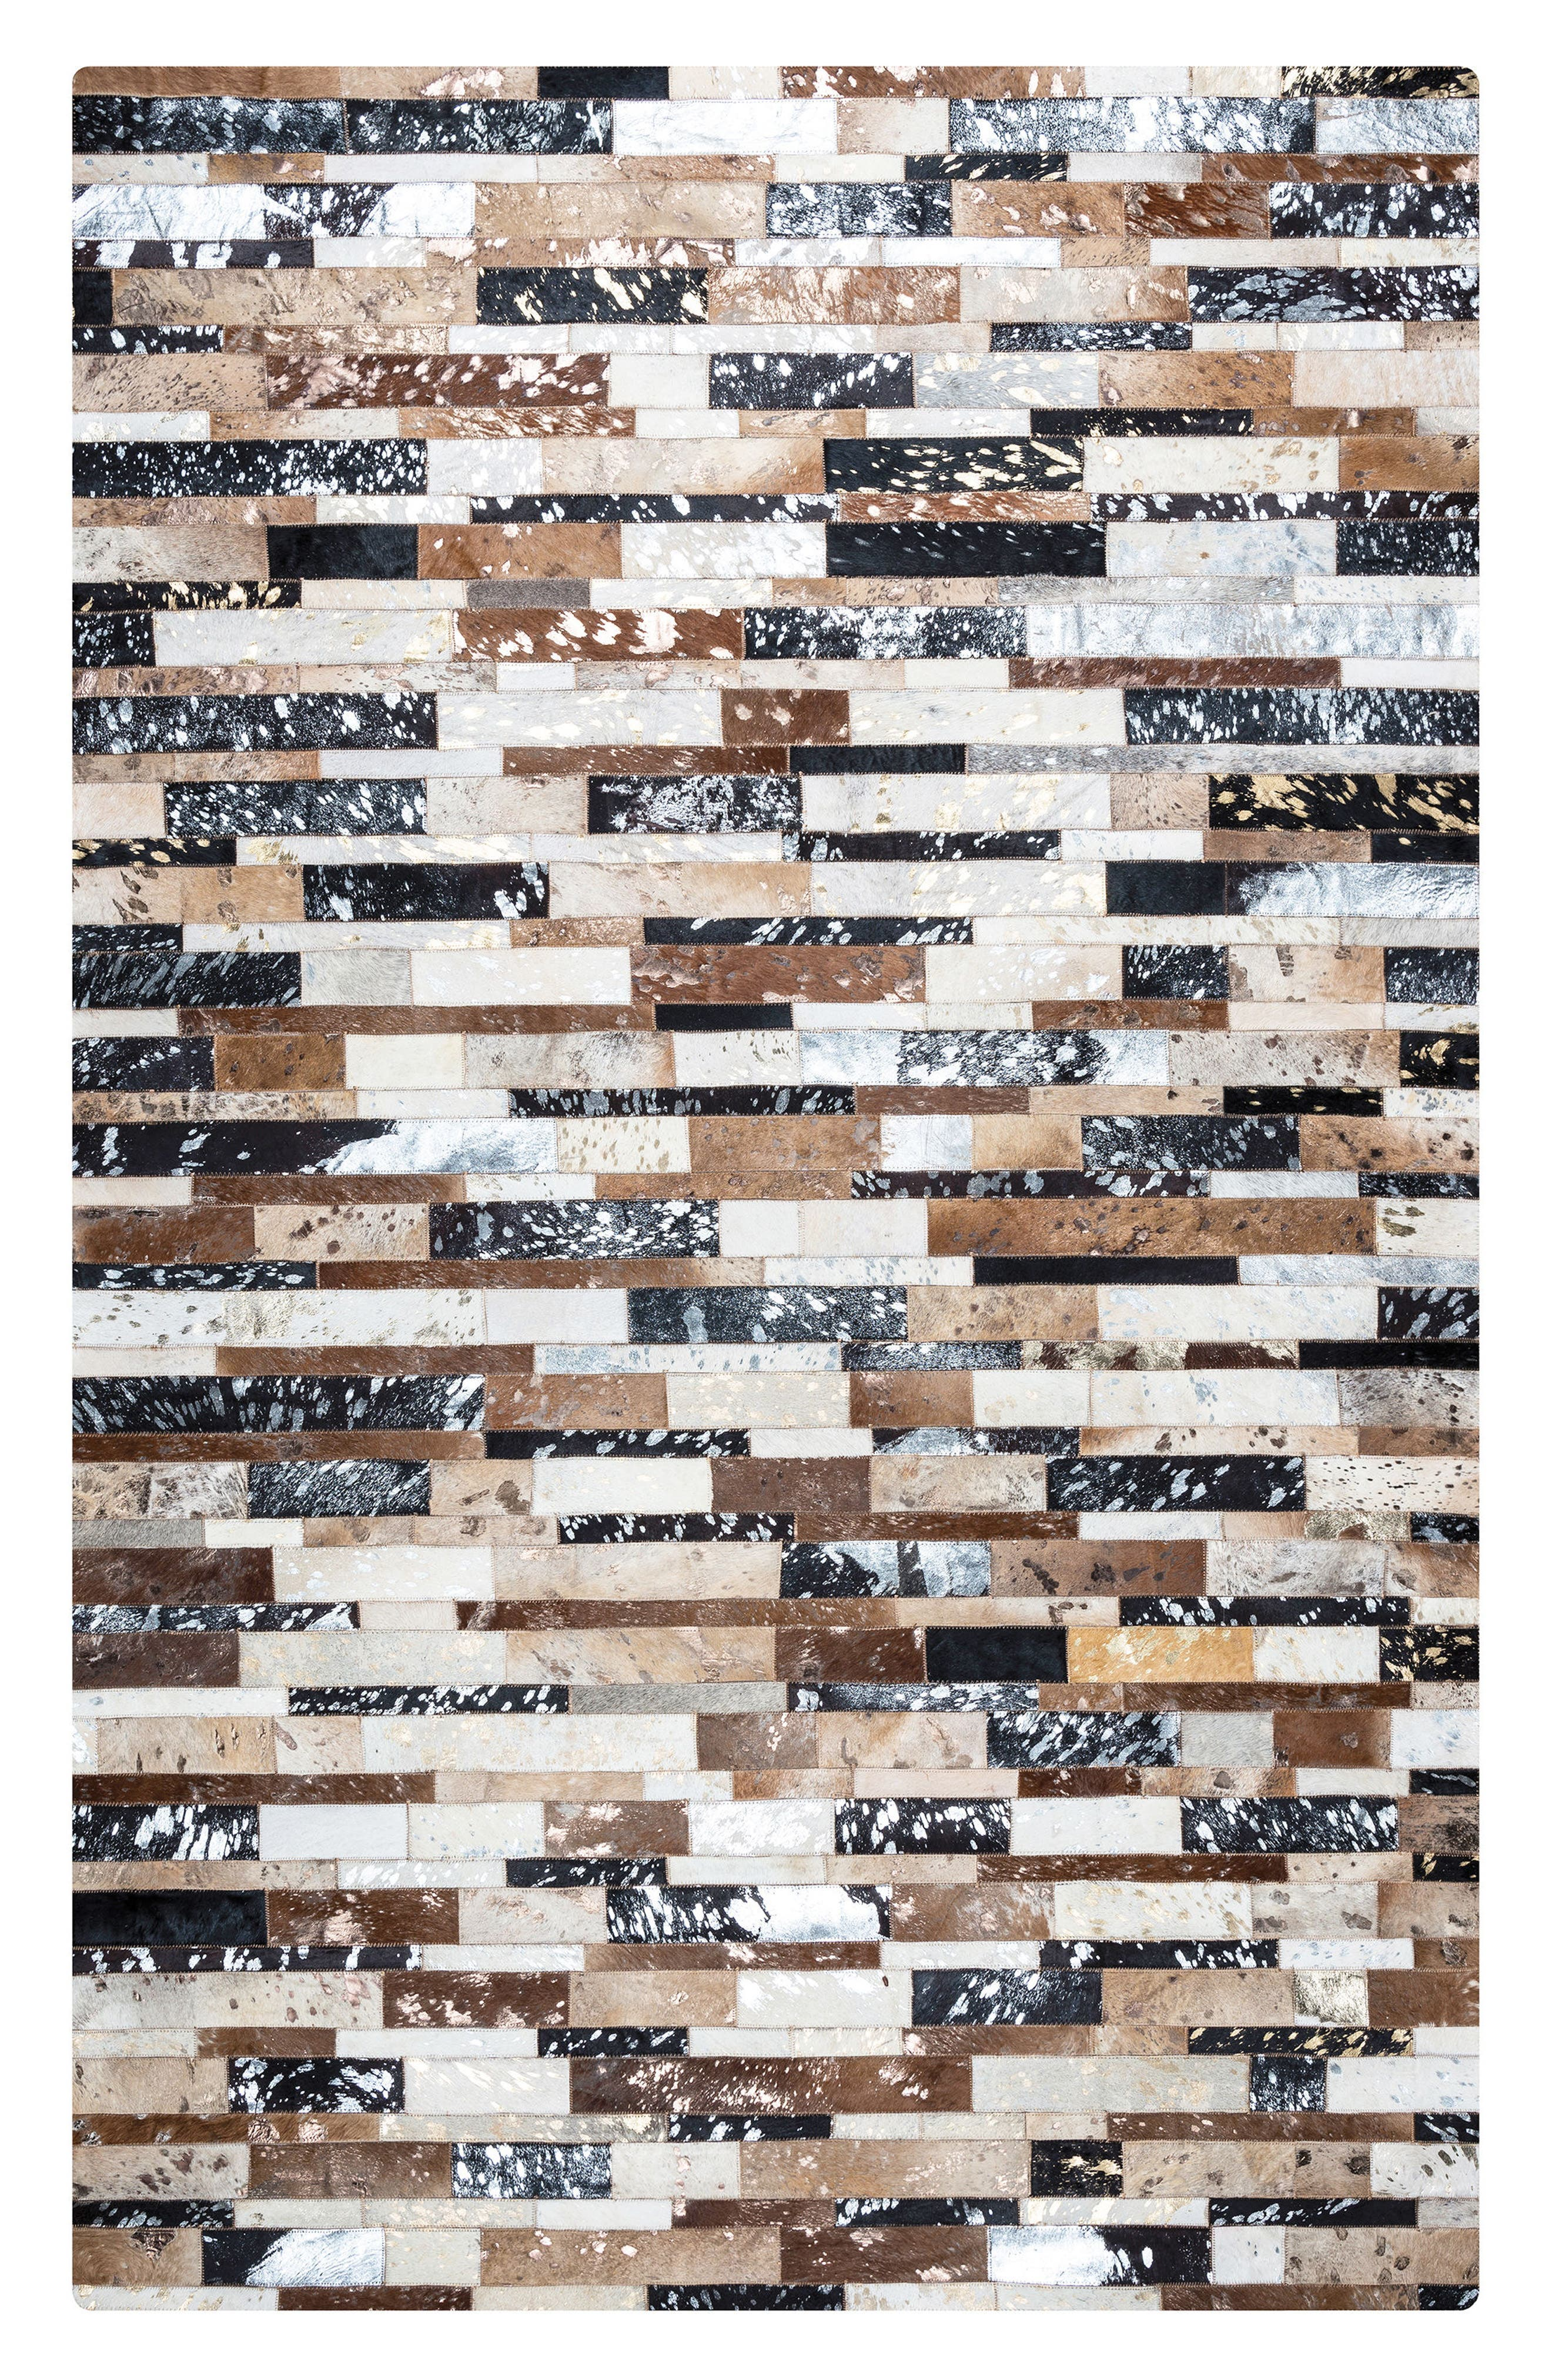 'Cumberland Pass' Hand Sewn Leather Area Rug,                             Main thumbnail 1, color,                             200